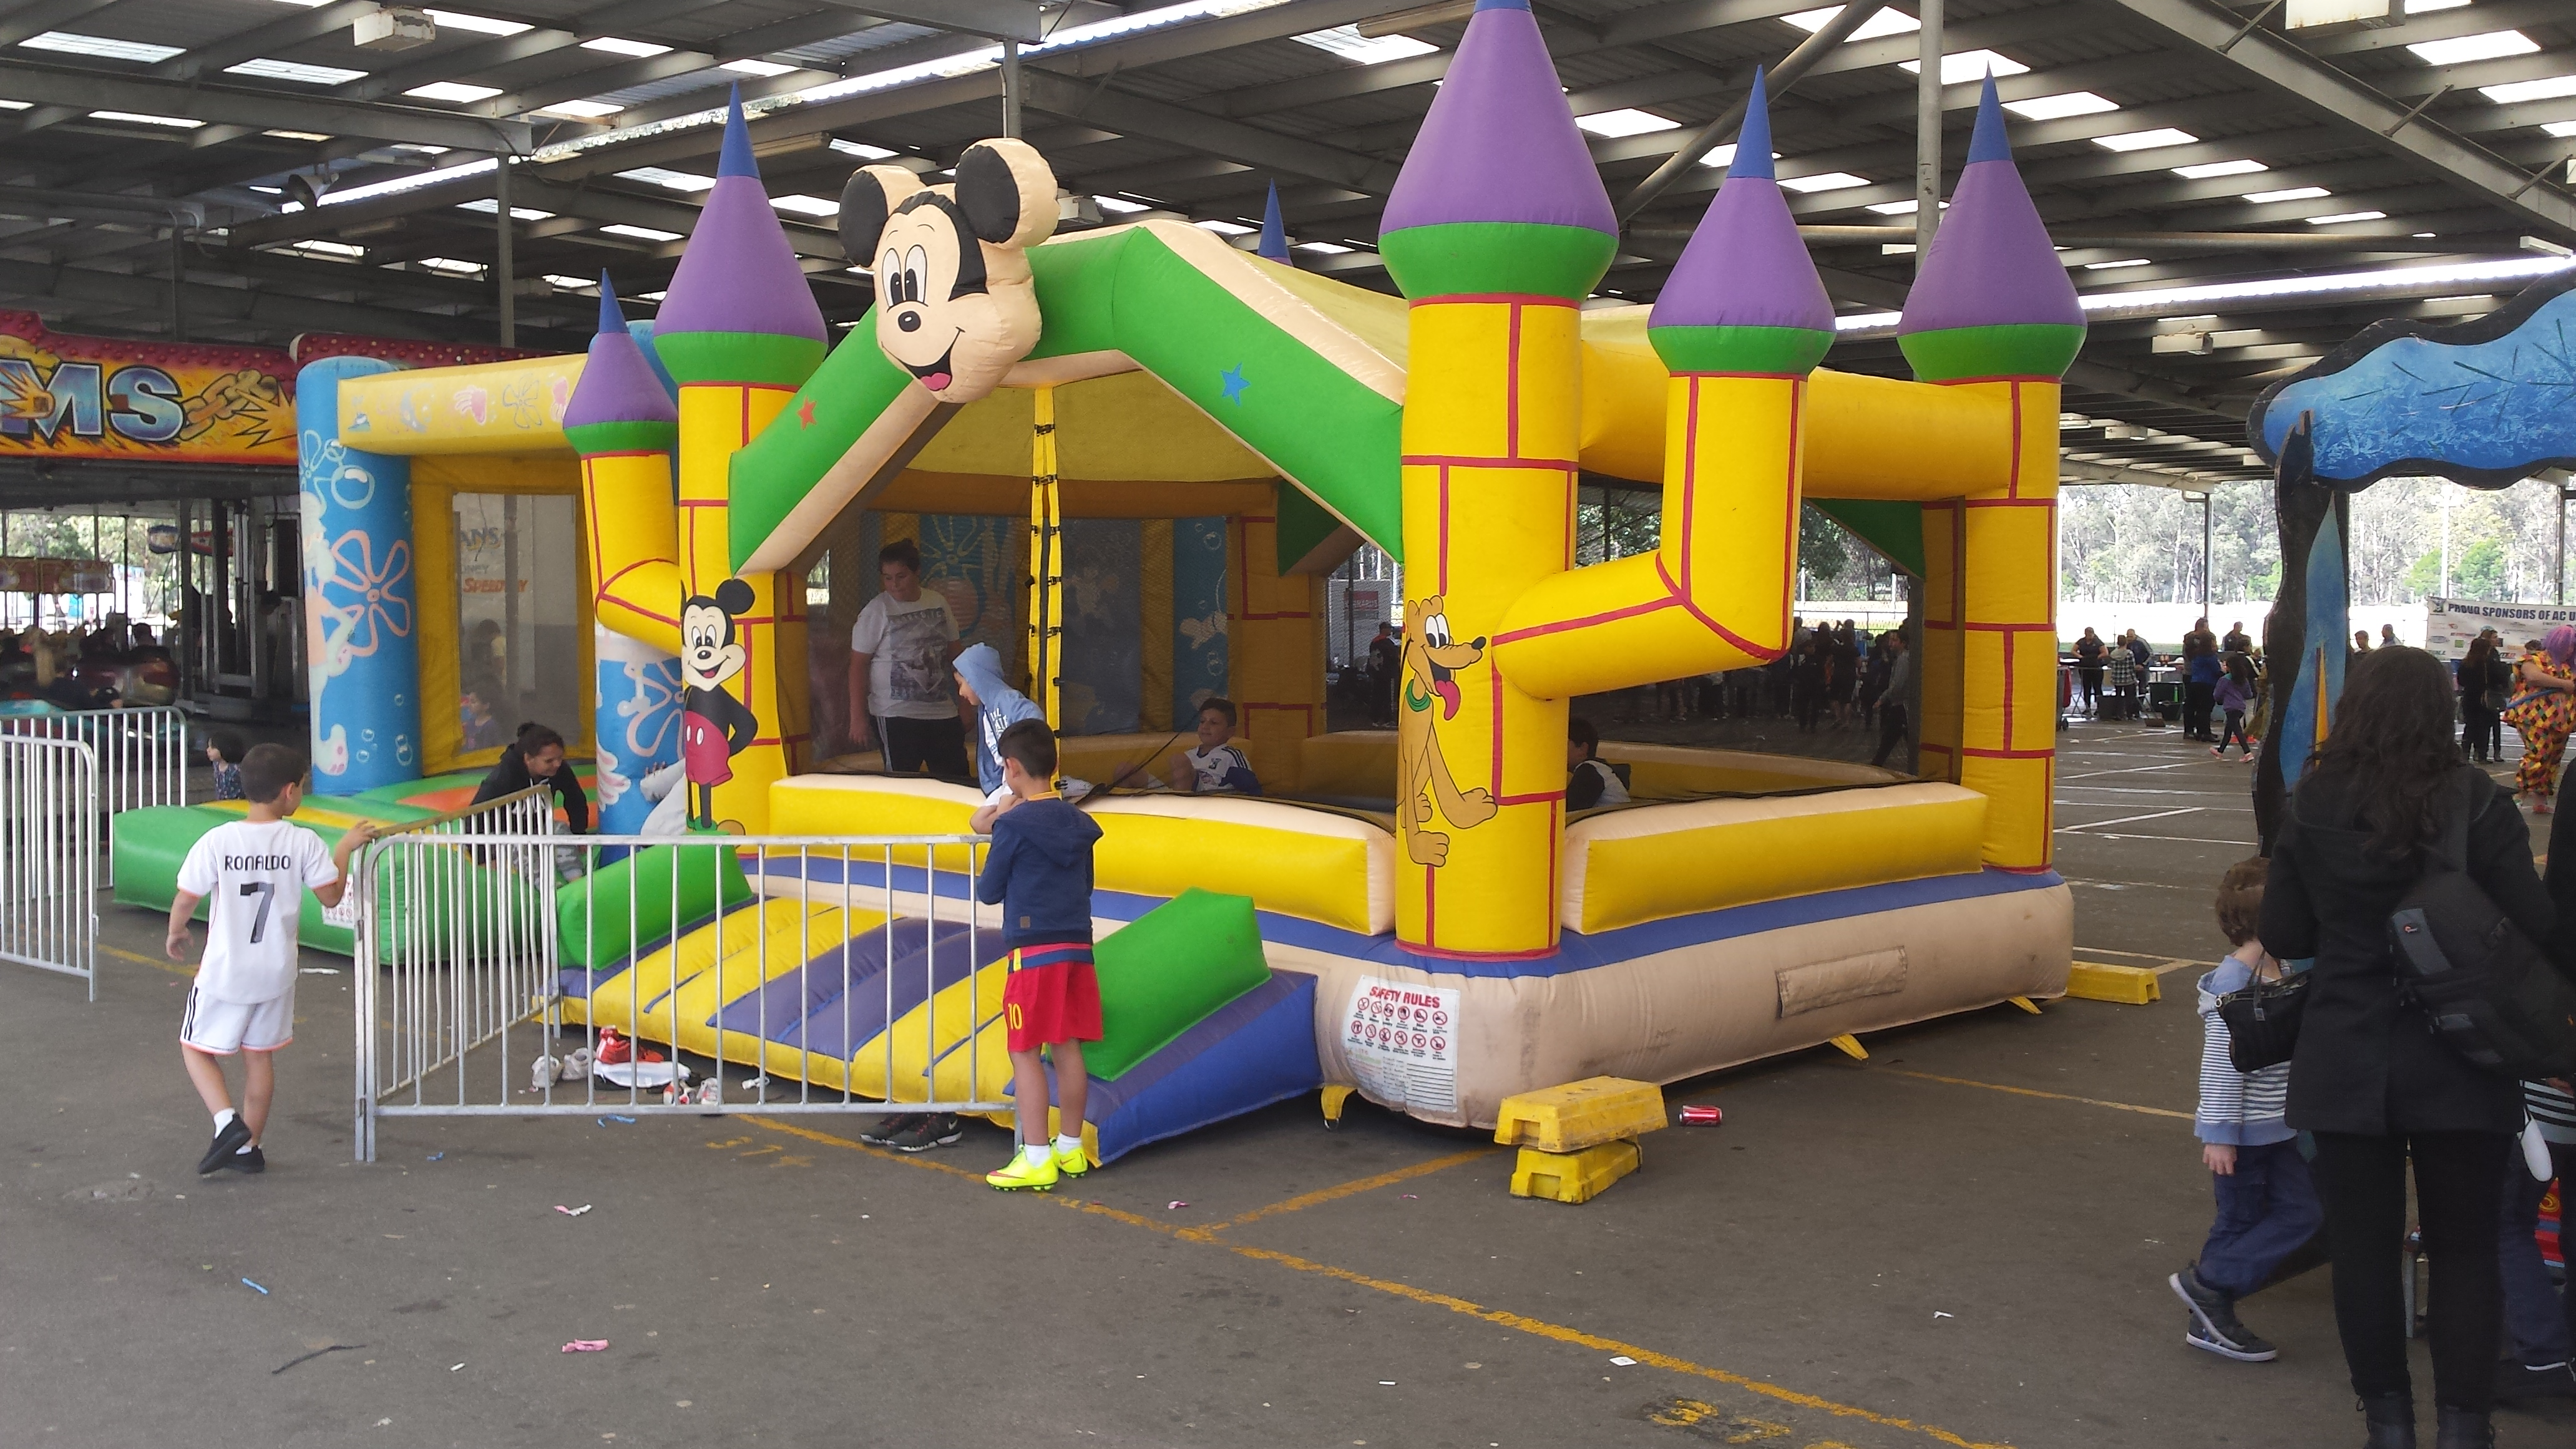 The little jumping castle